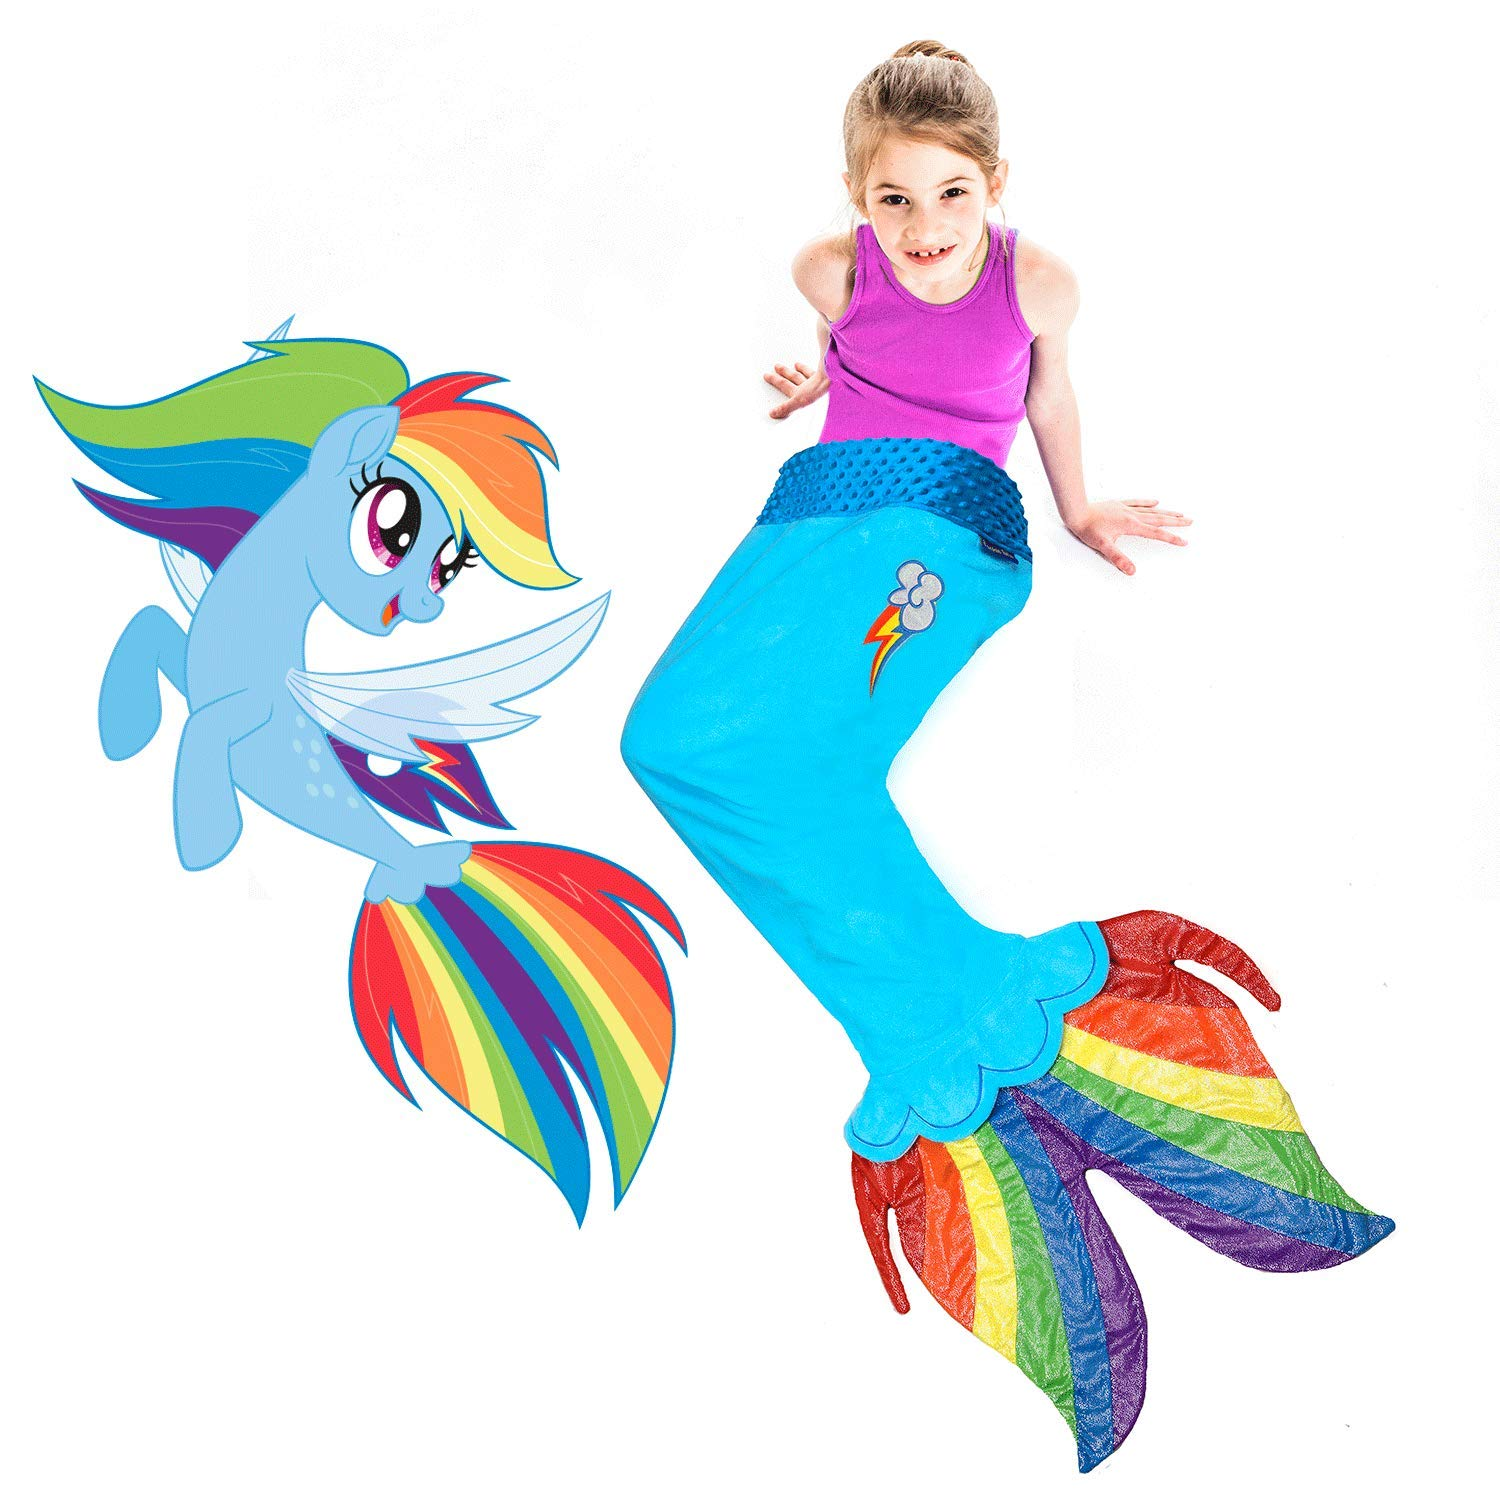 Amazon.com: My Little Pony Seapony Blanket in Rainbow Dash - Beautiful MLP Rainbow Dash Design with Cutie Mark for Rainbow Dash Fans: Home & Kitchen